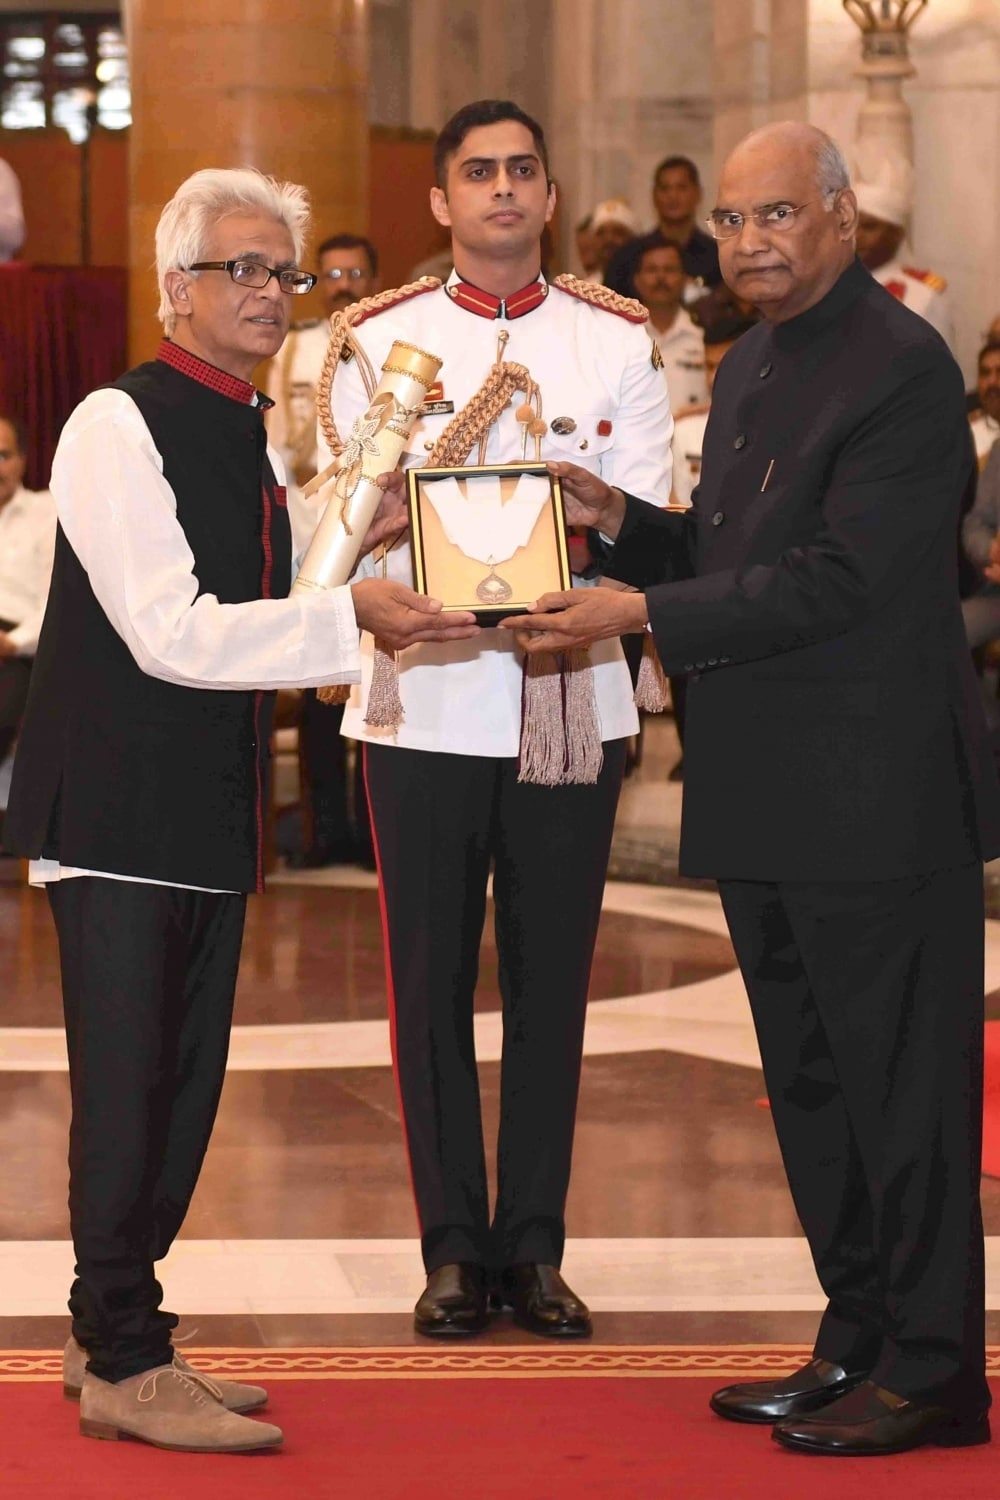 New Delhi: Singer-composer Bhupen Hazarika being posthumously honored with Bharat Ratna by President Ram Nath Kovind during an award ceremony at Rashtrapati Bhavan in New Delhi on Aug 8, 2019. (Photo: IANS/RB)